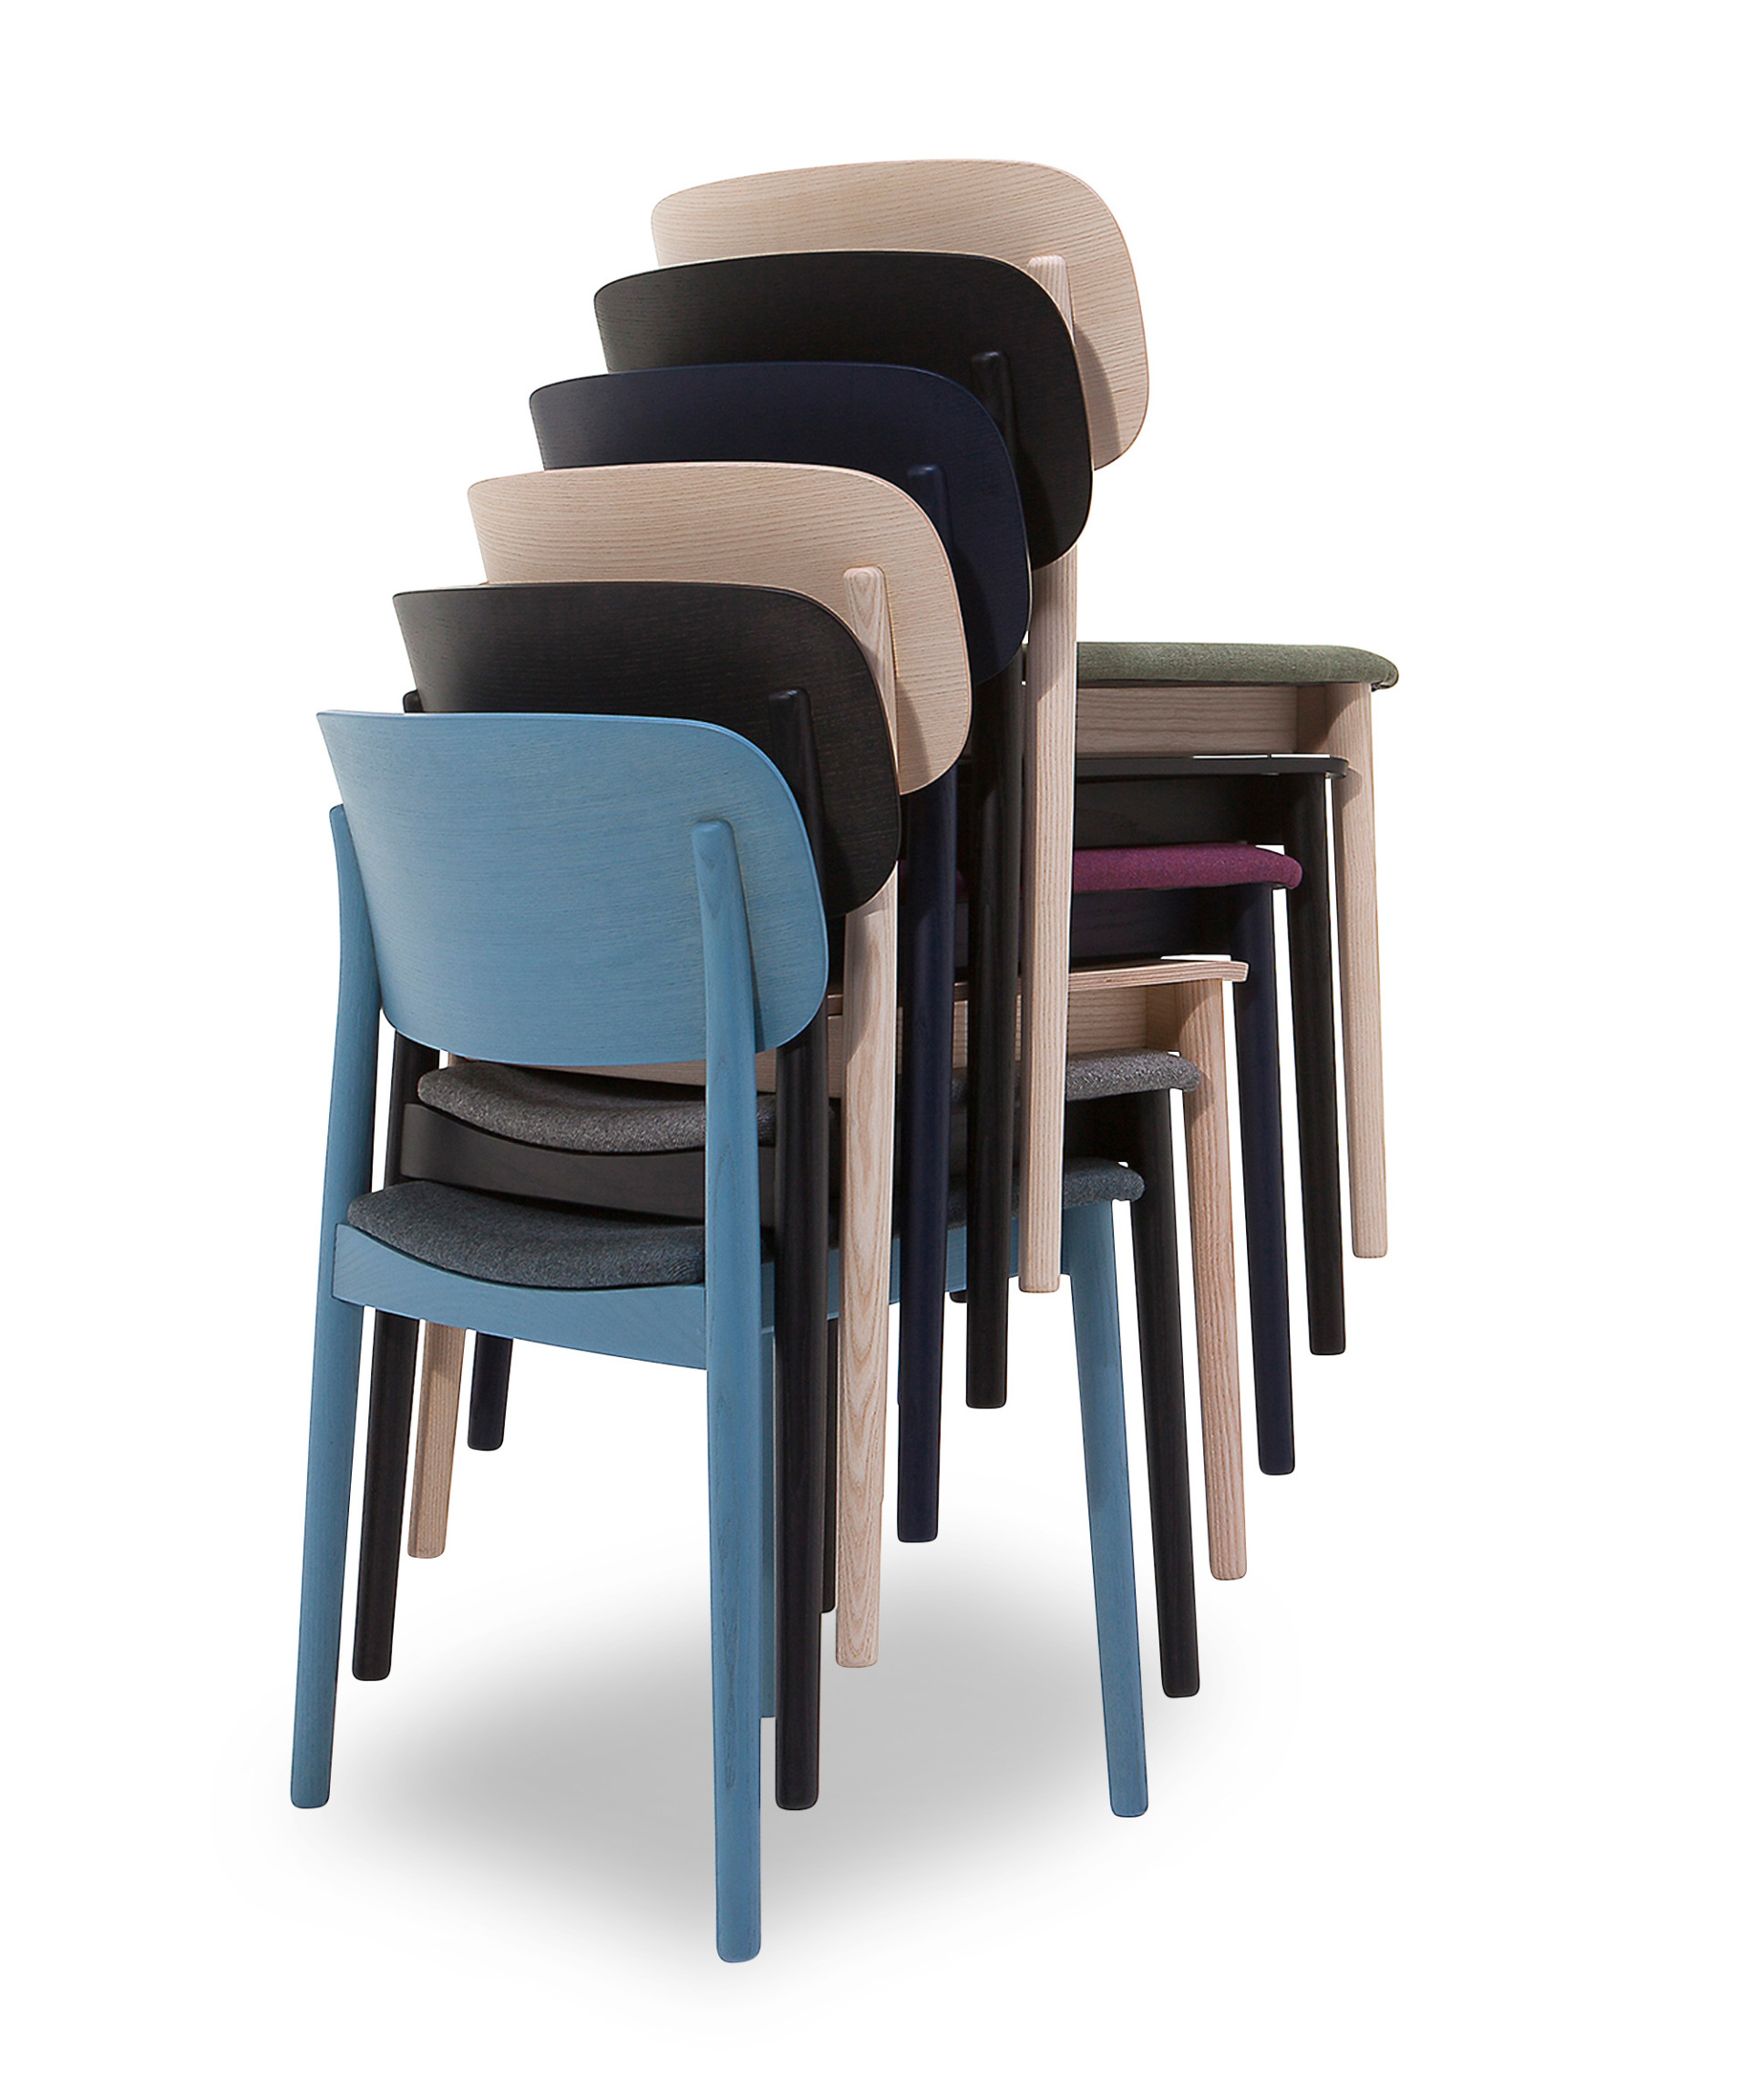 Why Choose A Stackable Chair Harrows Nz